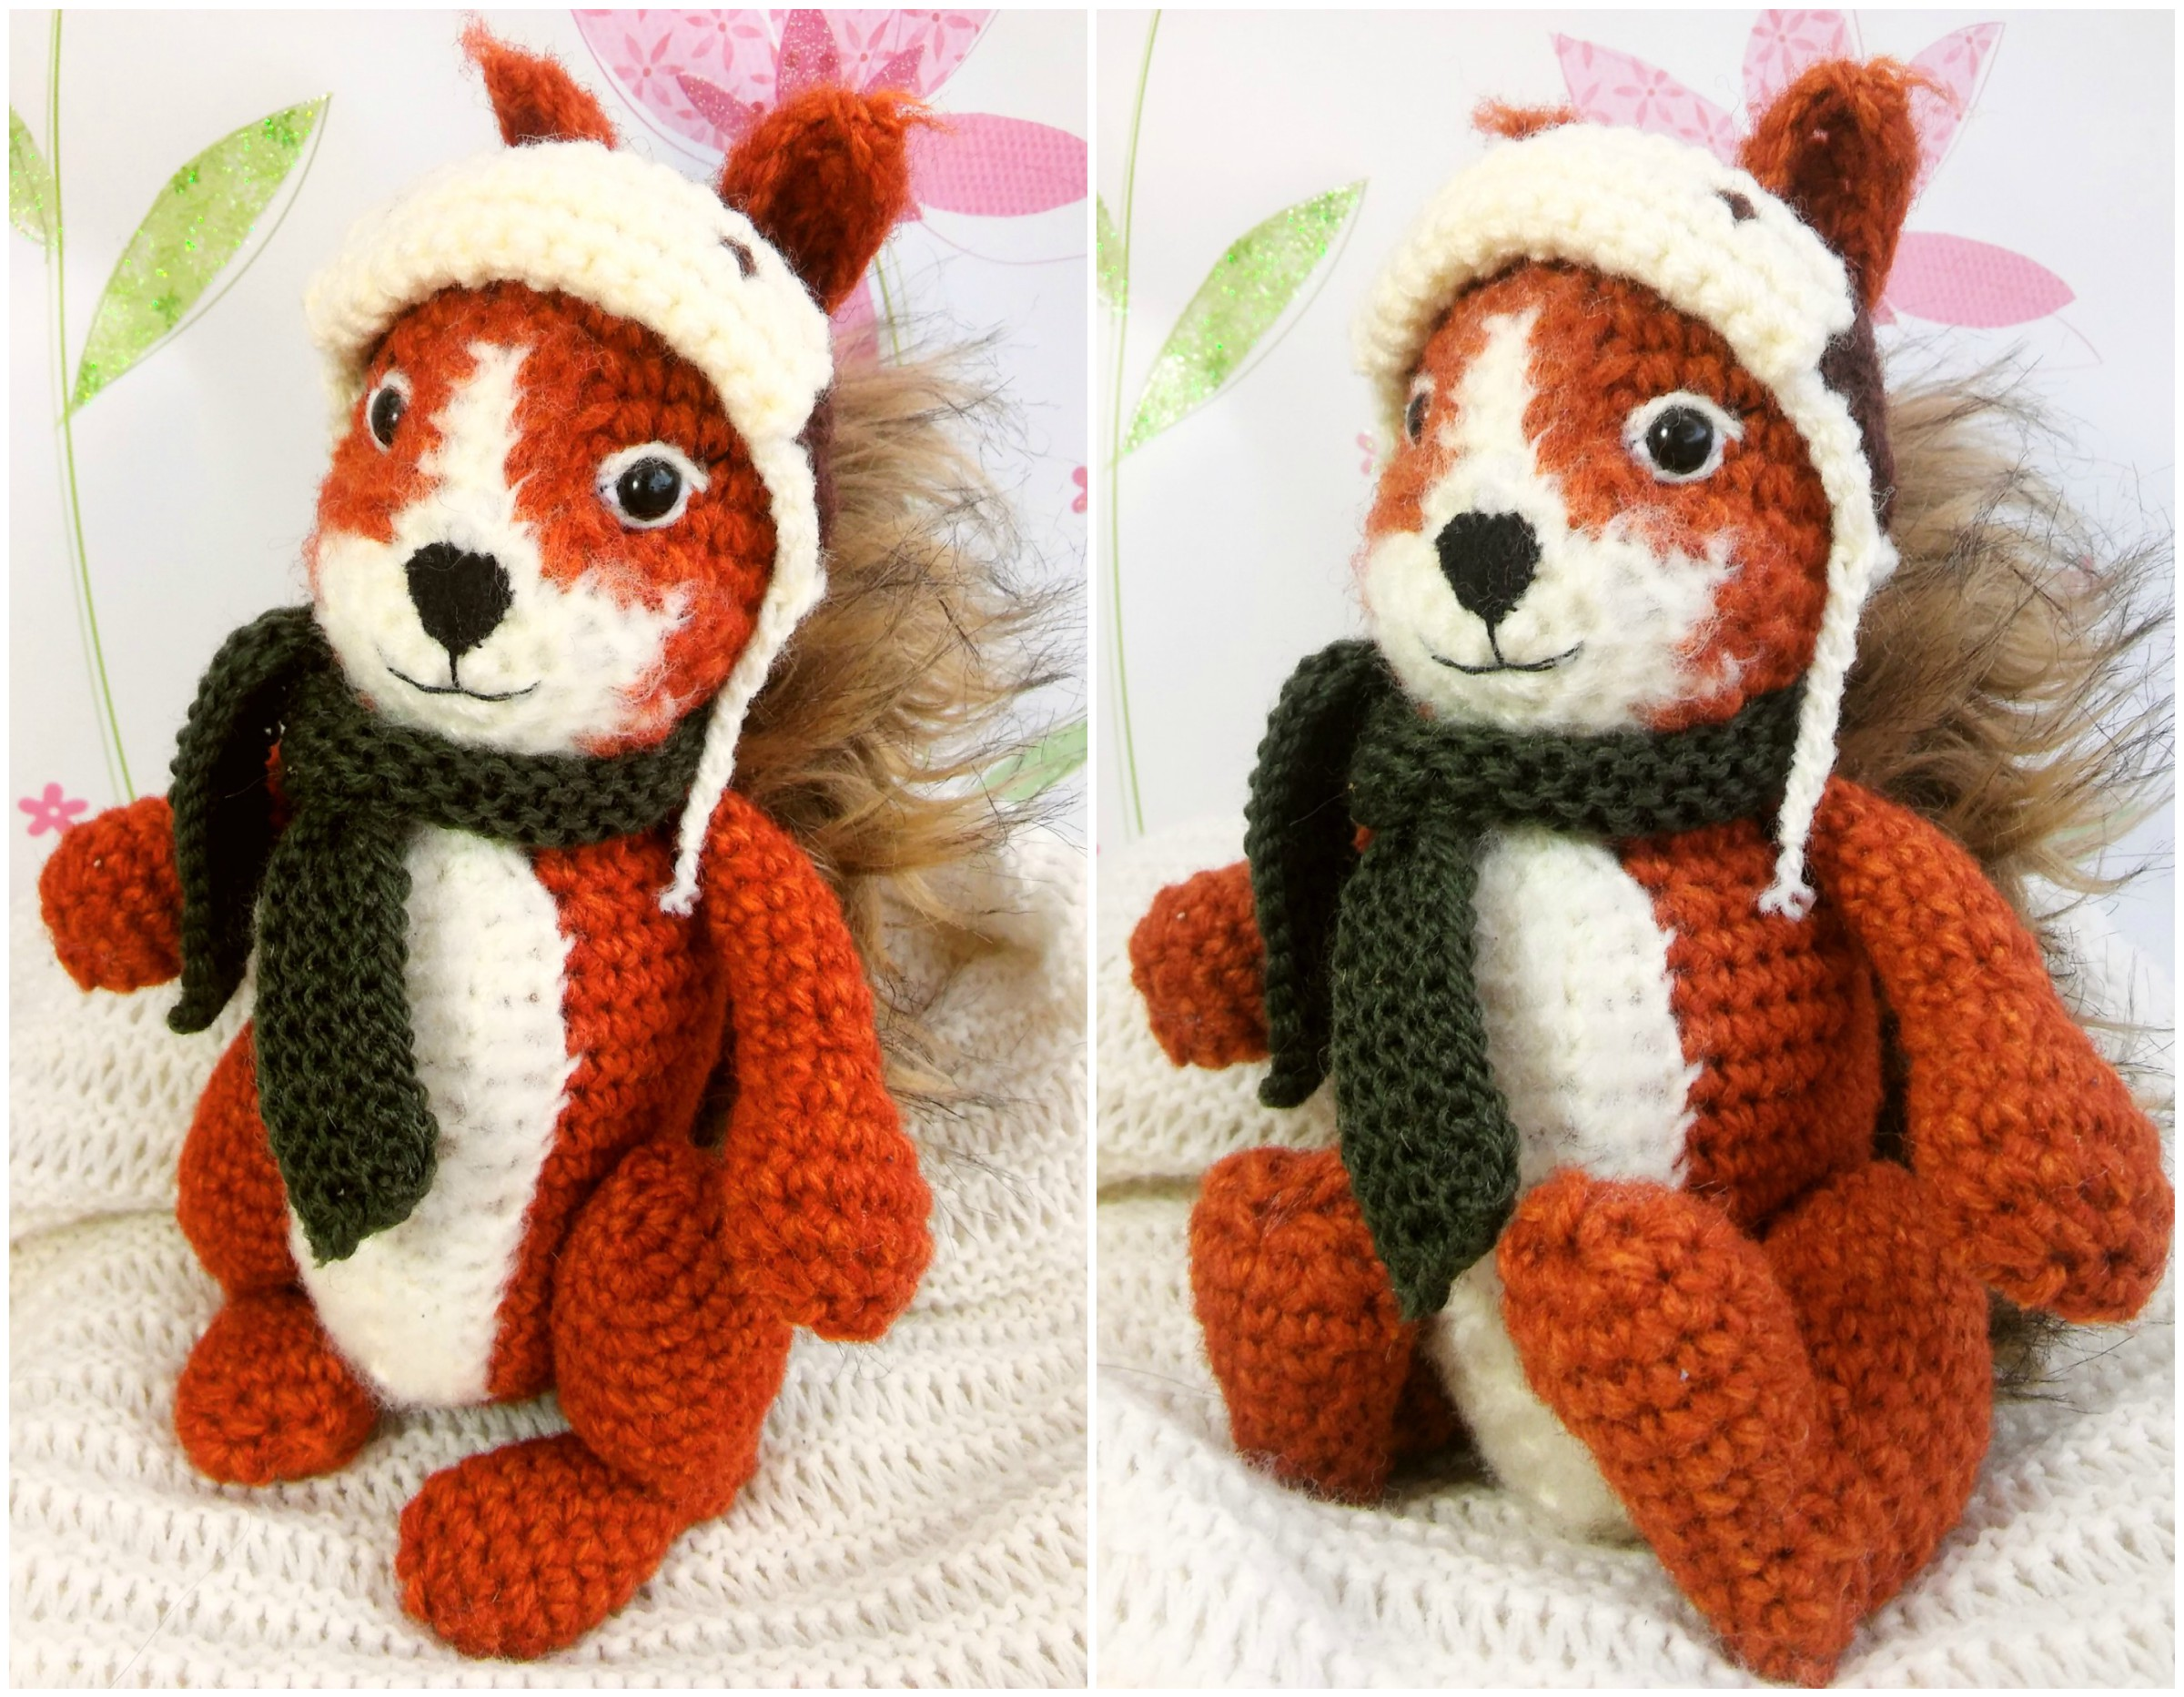 Squirrel Amigurumi Crochet Pattern - The Magic Loop